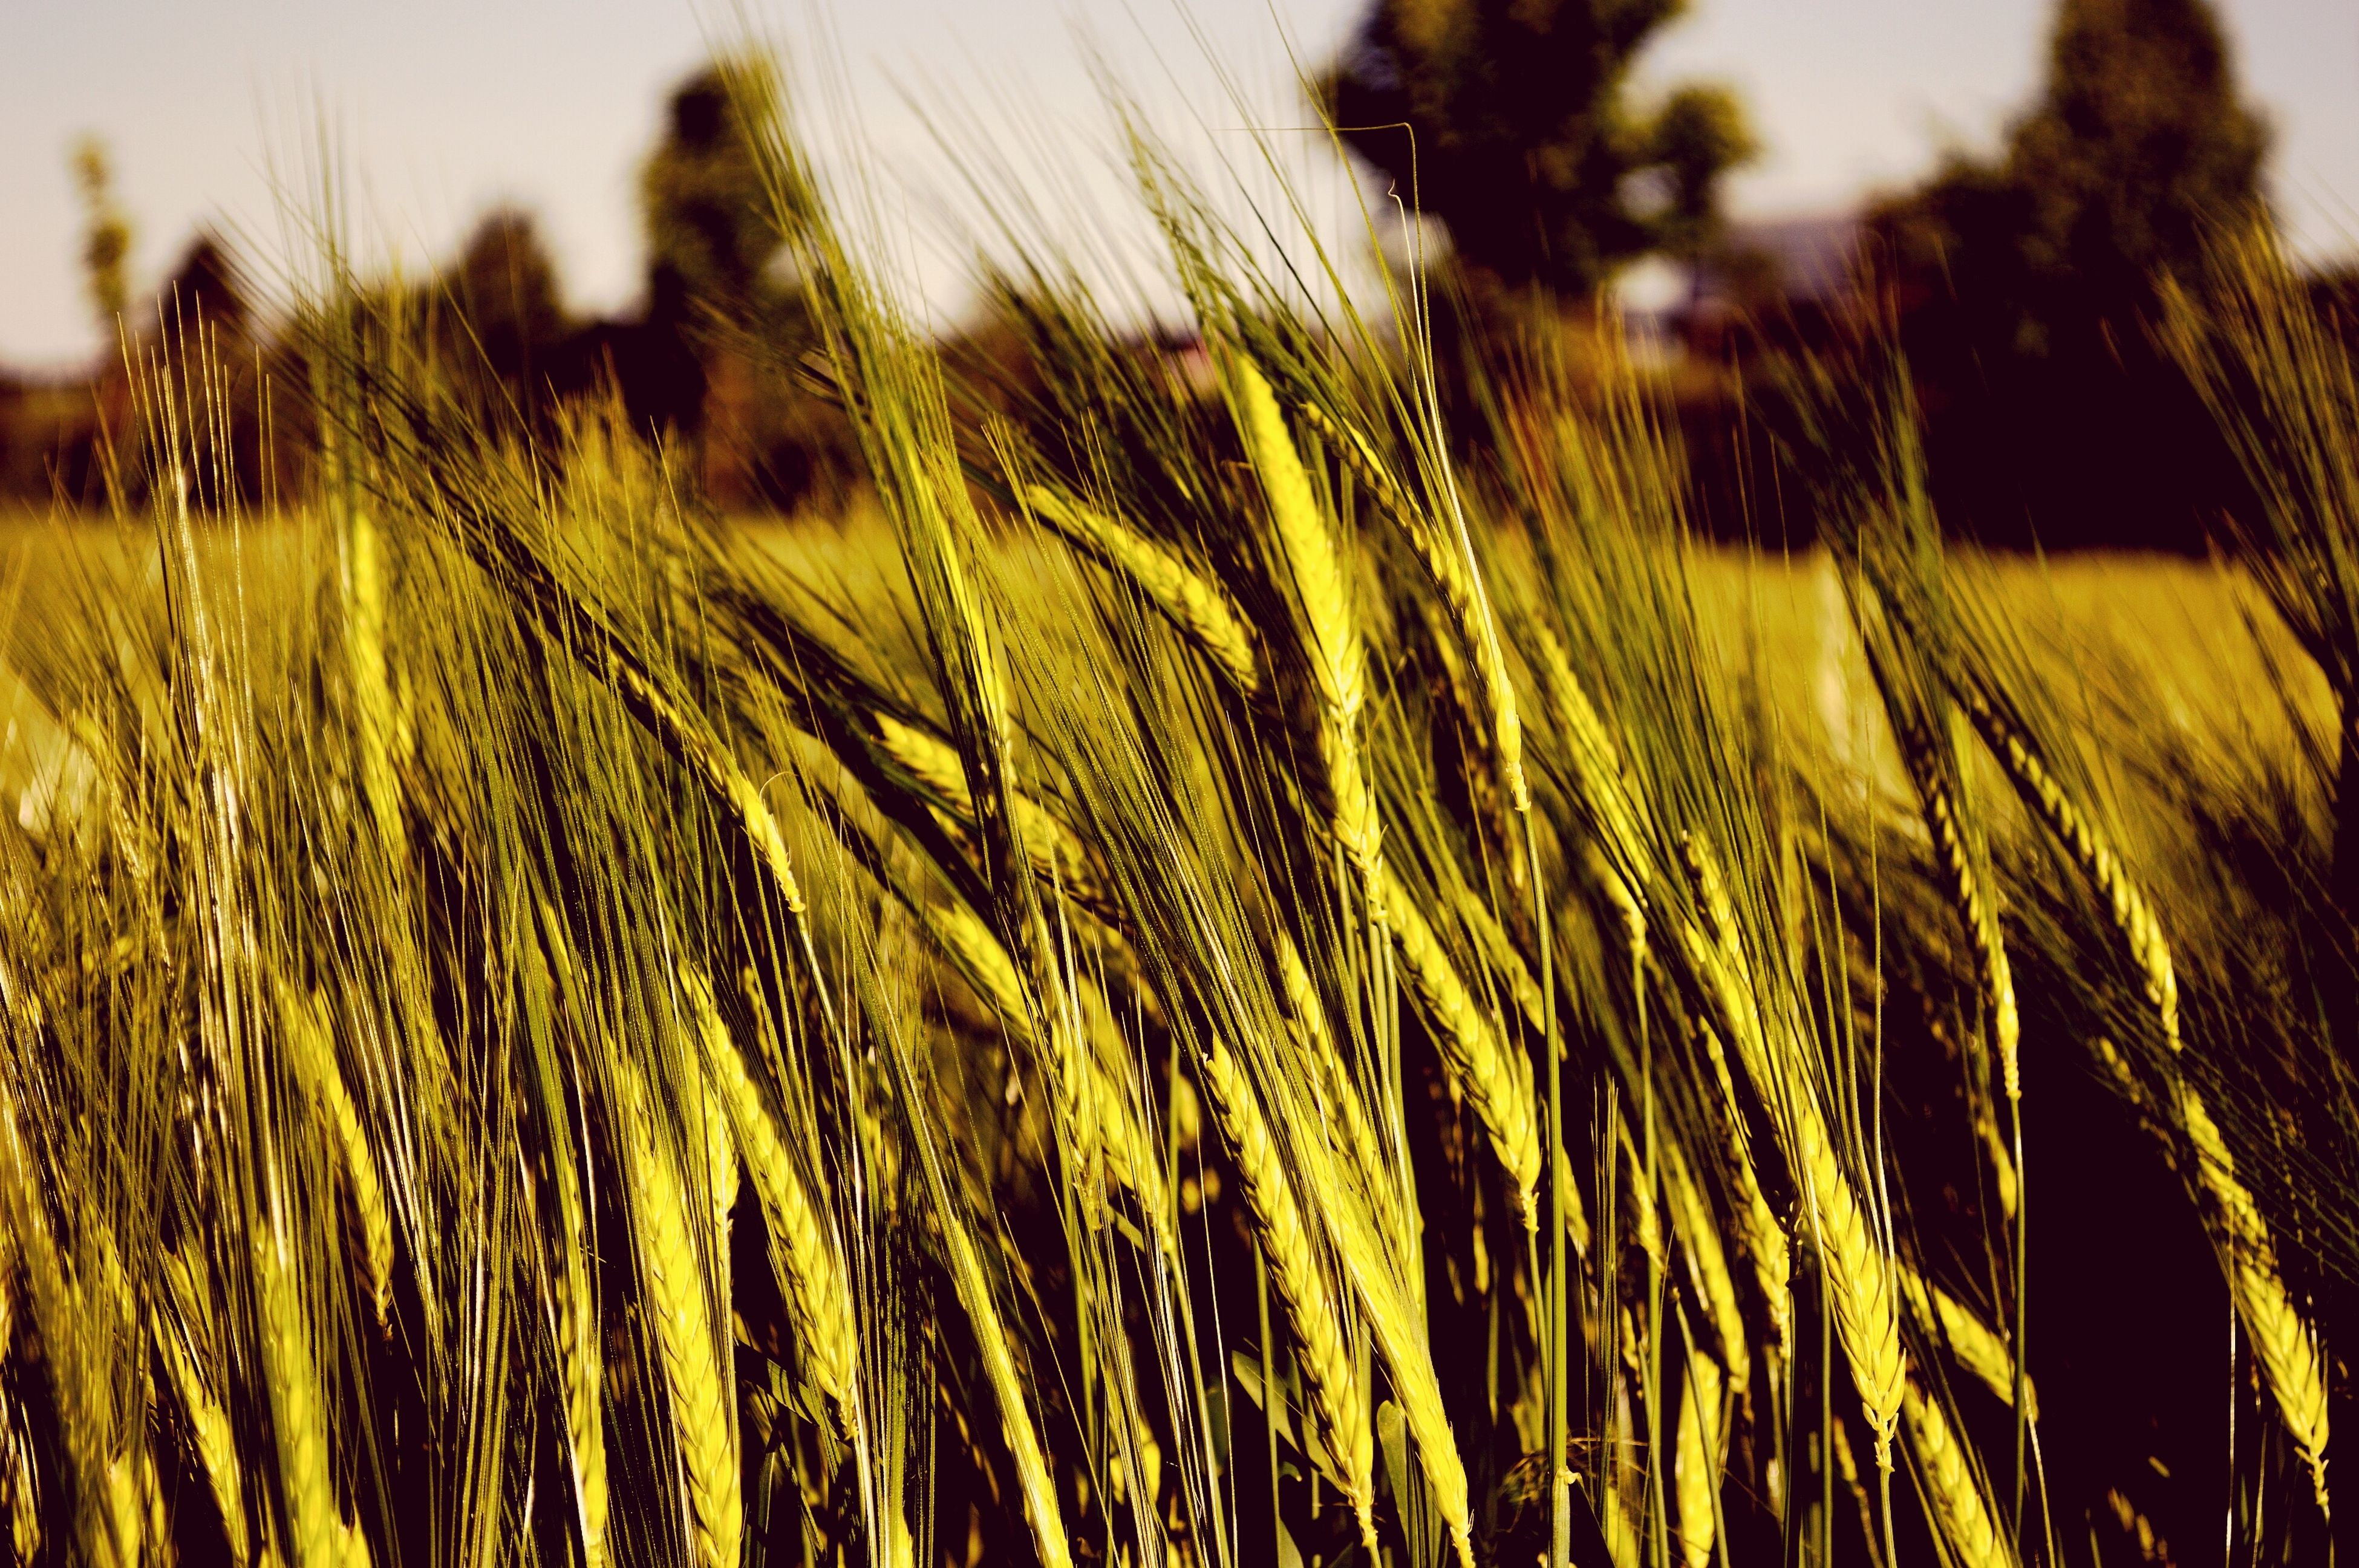 growth, field, plant, agriculture, nature, crop, farm, rural scene, close-up, tranquility, green color, focus on foreground, beauty in nature, growing, grass, cereal plant, outdoors, day, no people, freshness